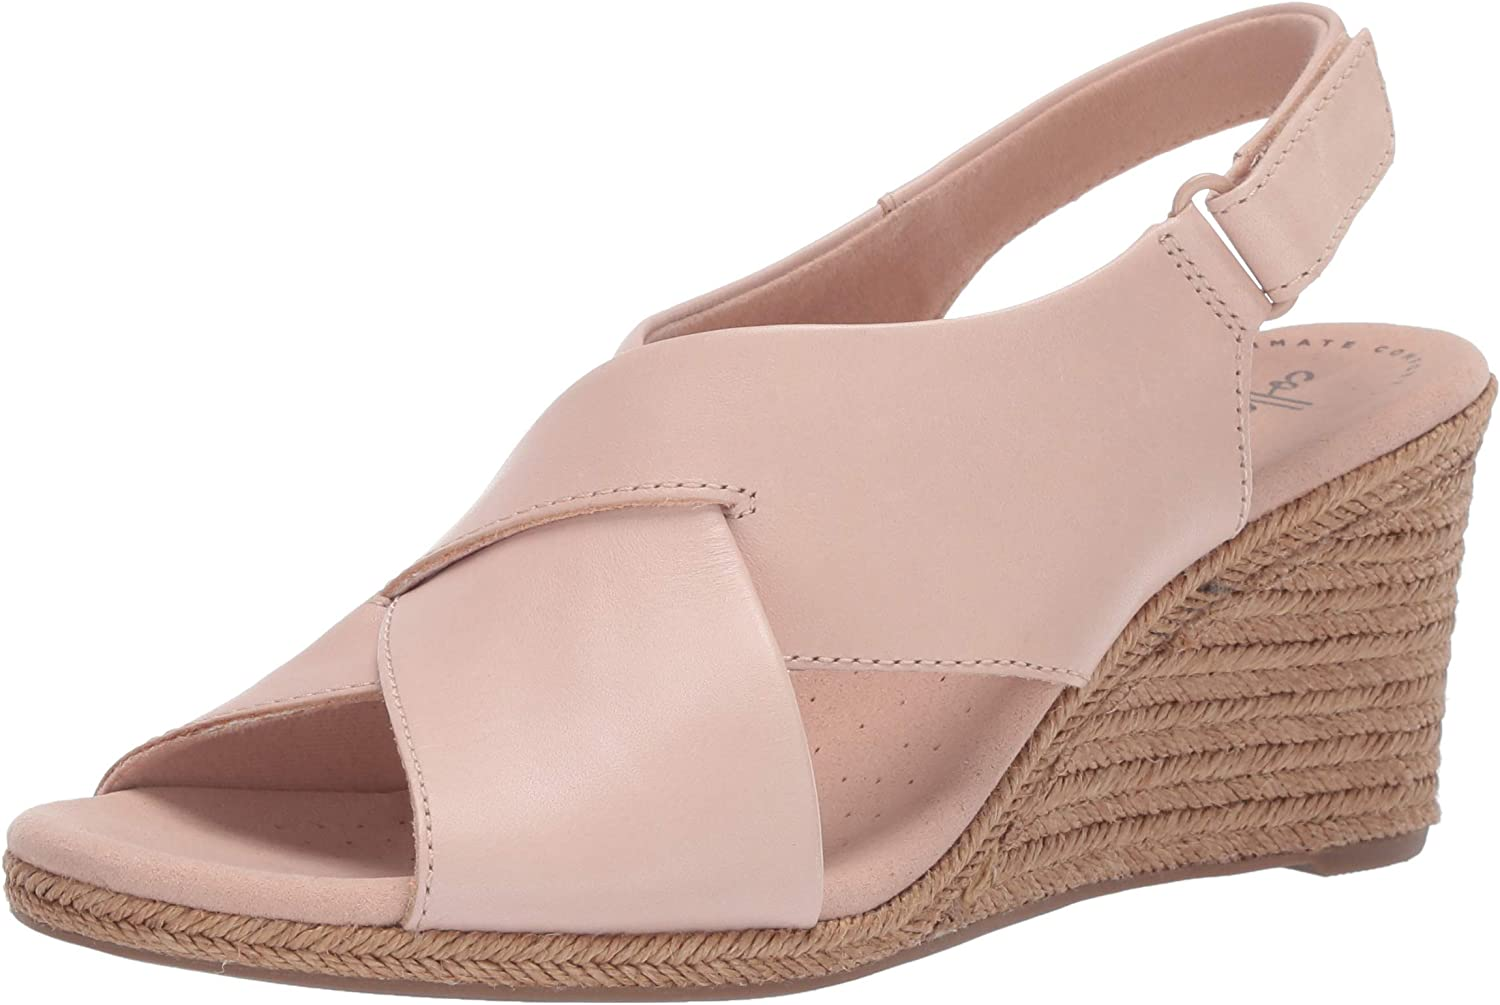 Clarks Women's Lowest price challenge security Lafley Sandal Alaine Wedge